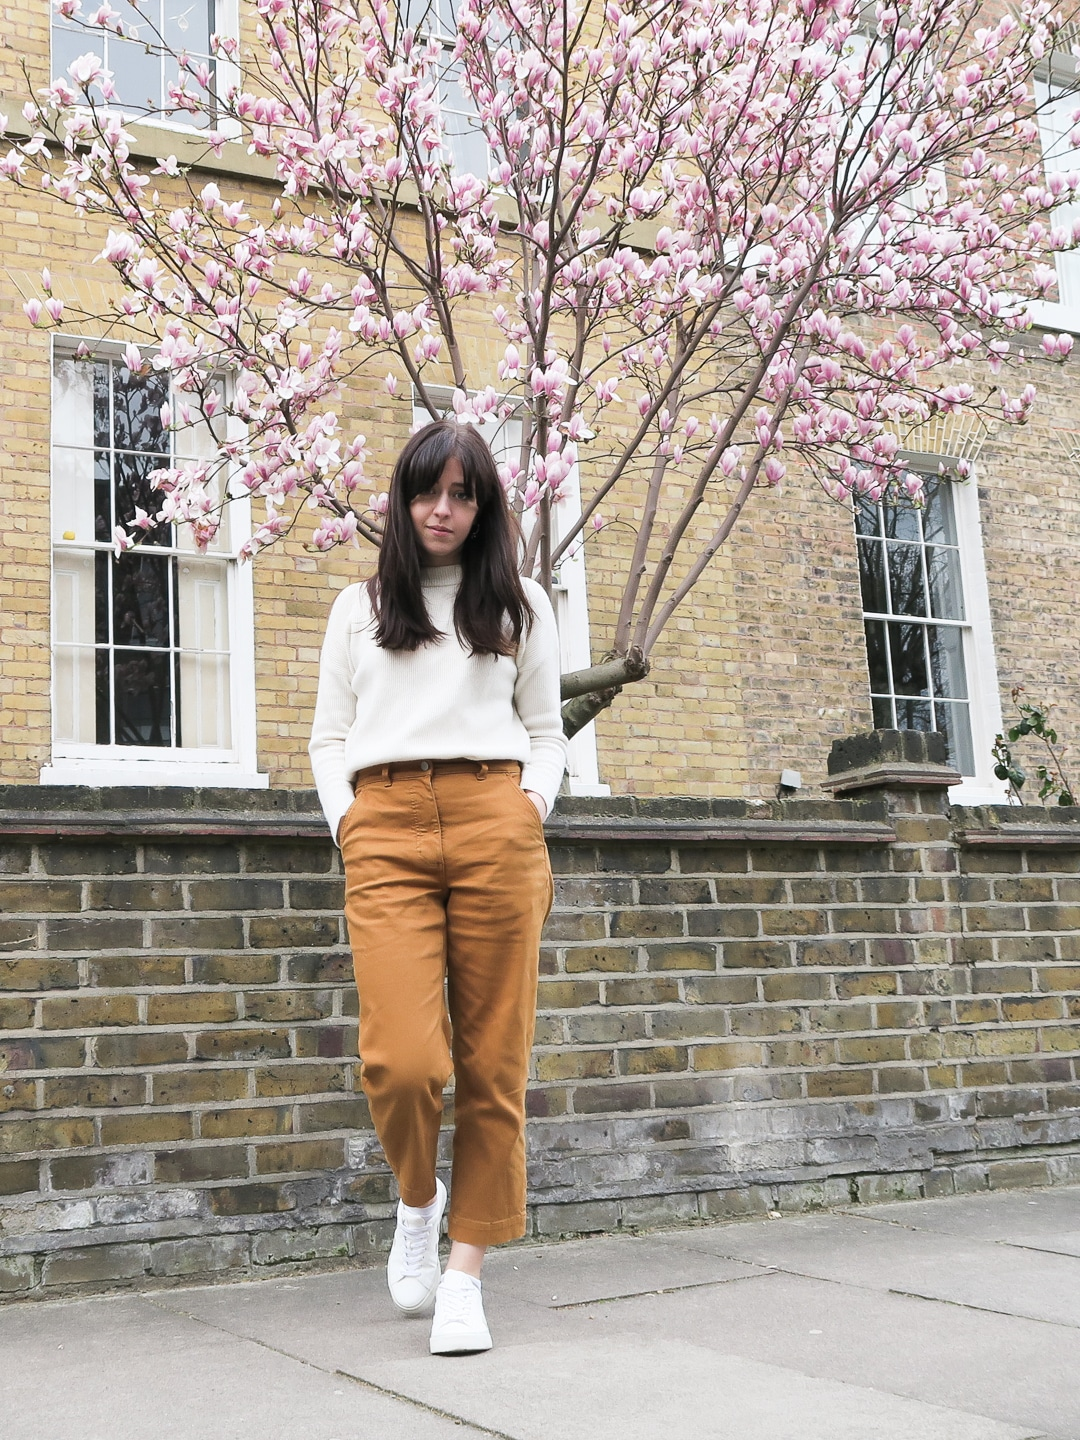 Is Everlane really ethical fashion? | Curiously Conscious